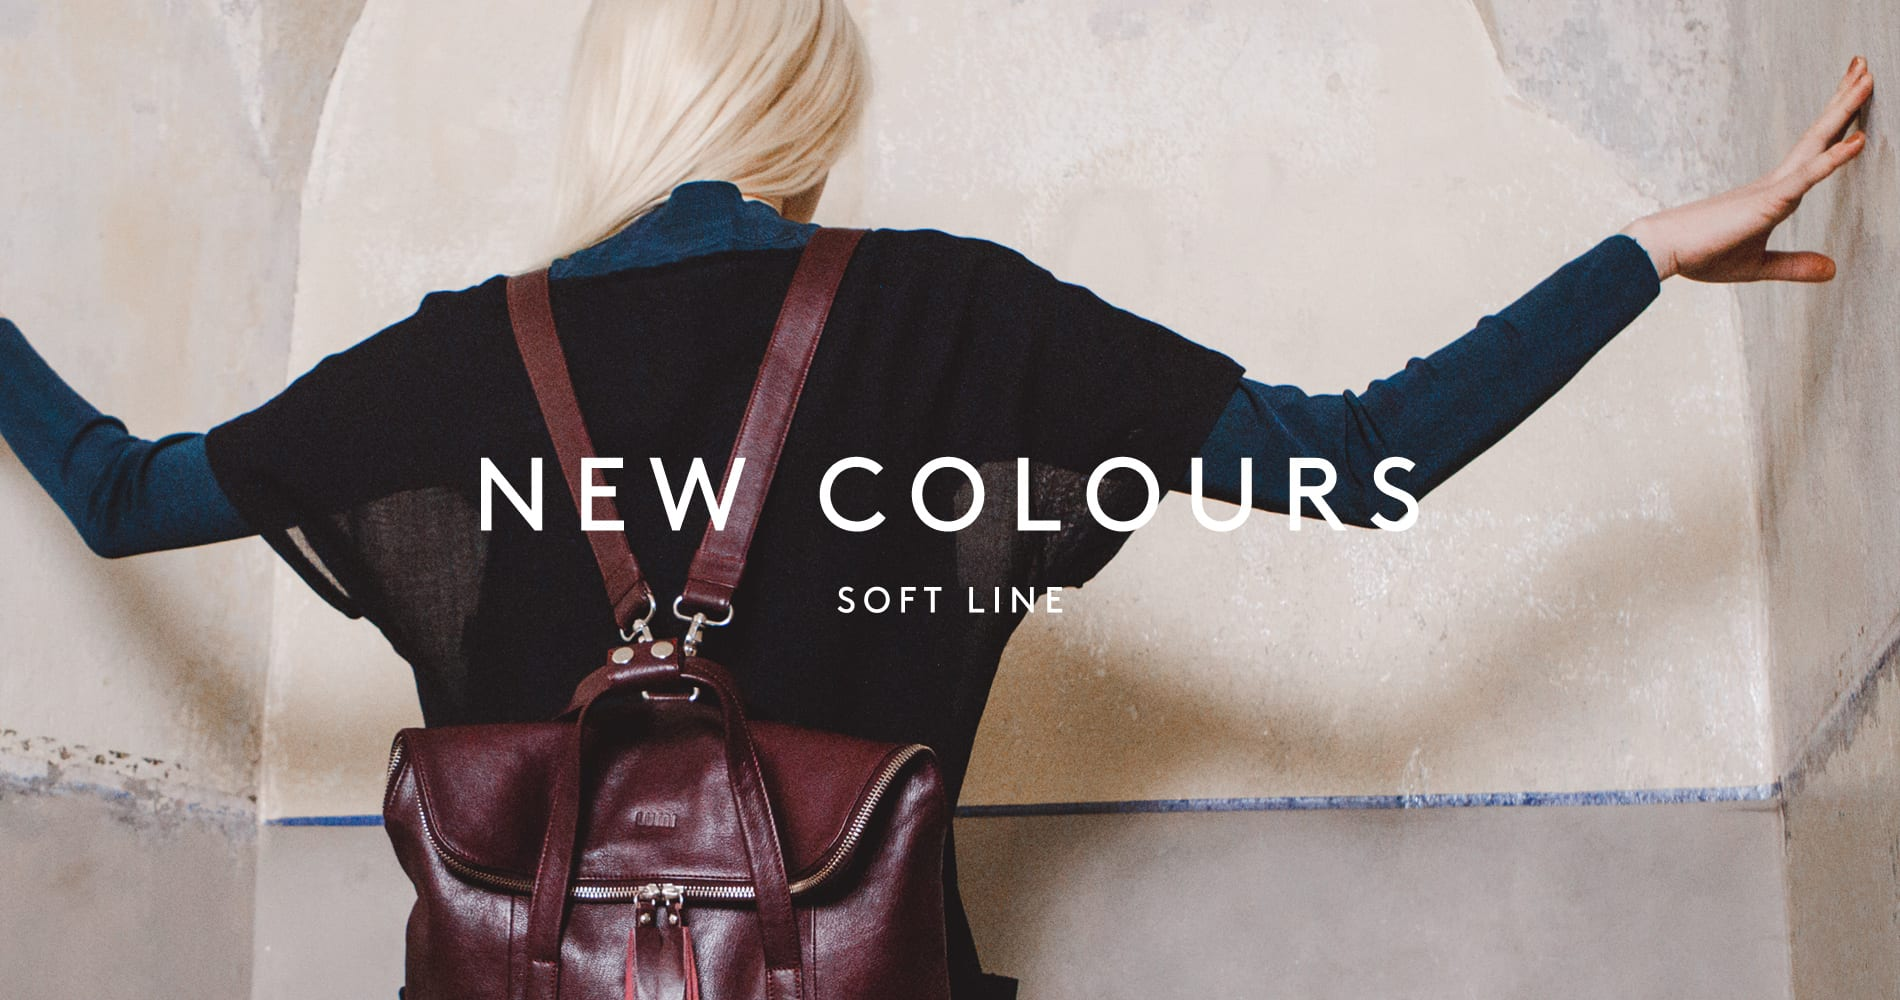 New autumnal FW17 Soft Line colours have arrived to our online store and LUMI flagship store!